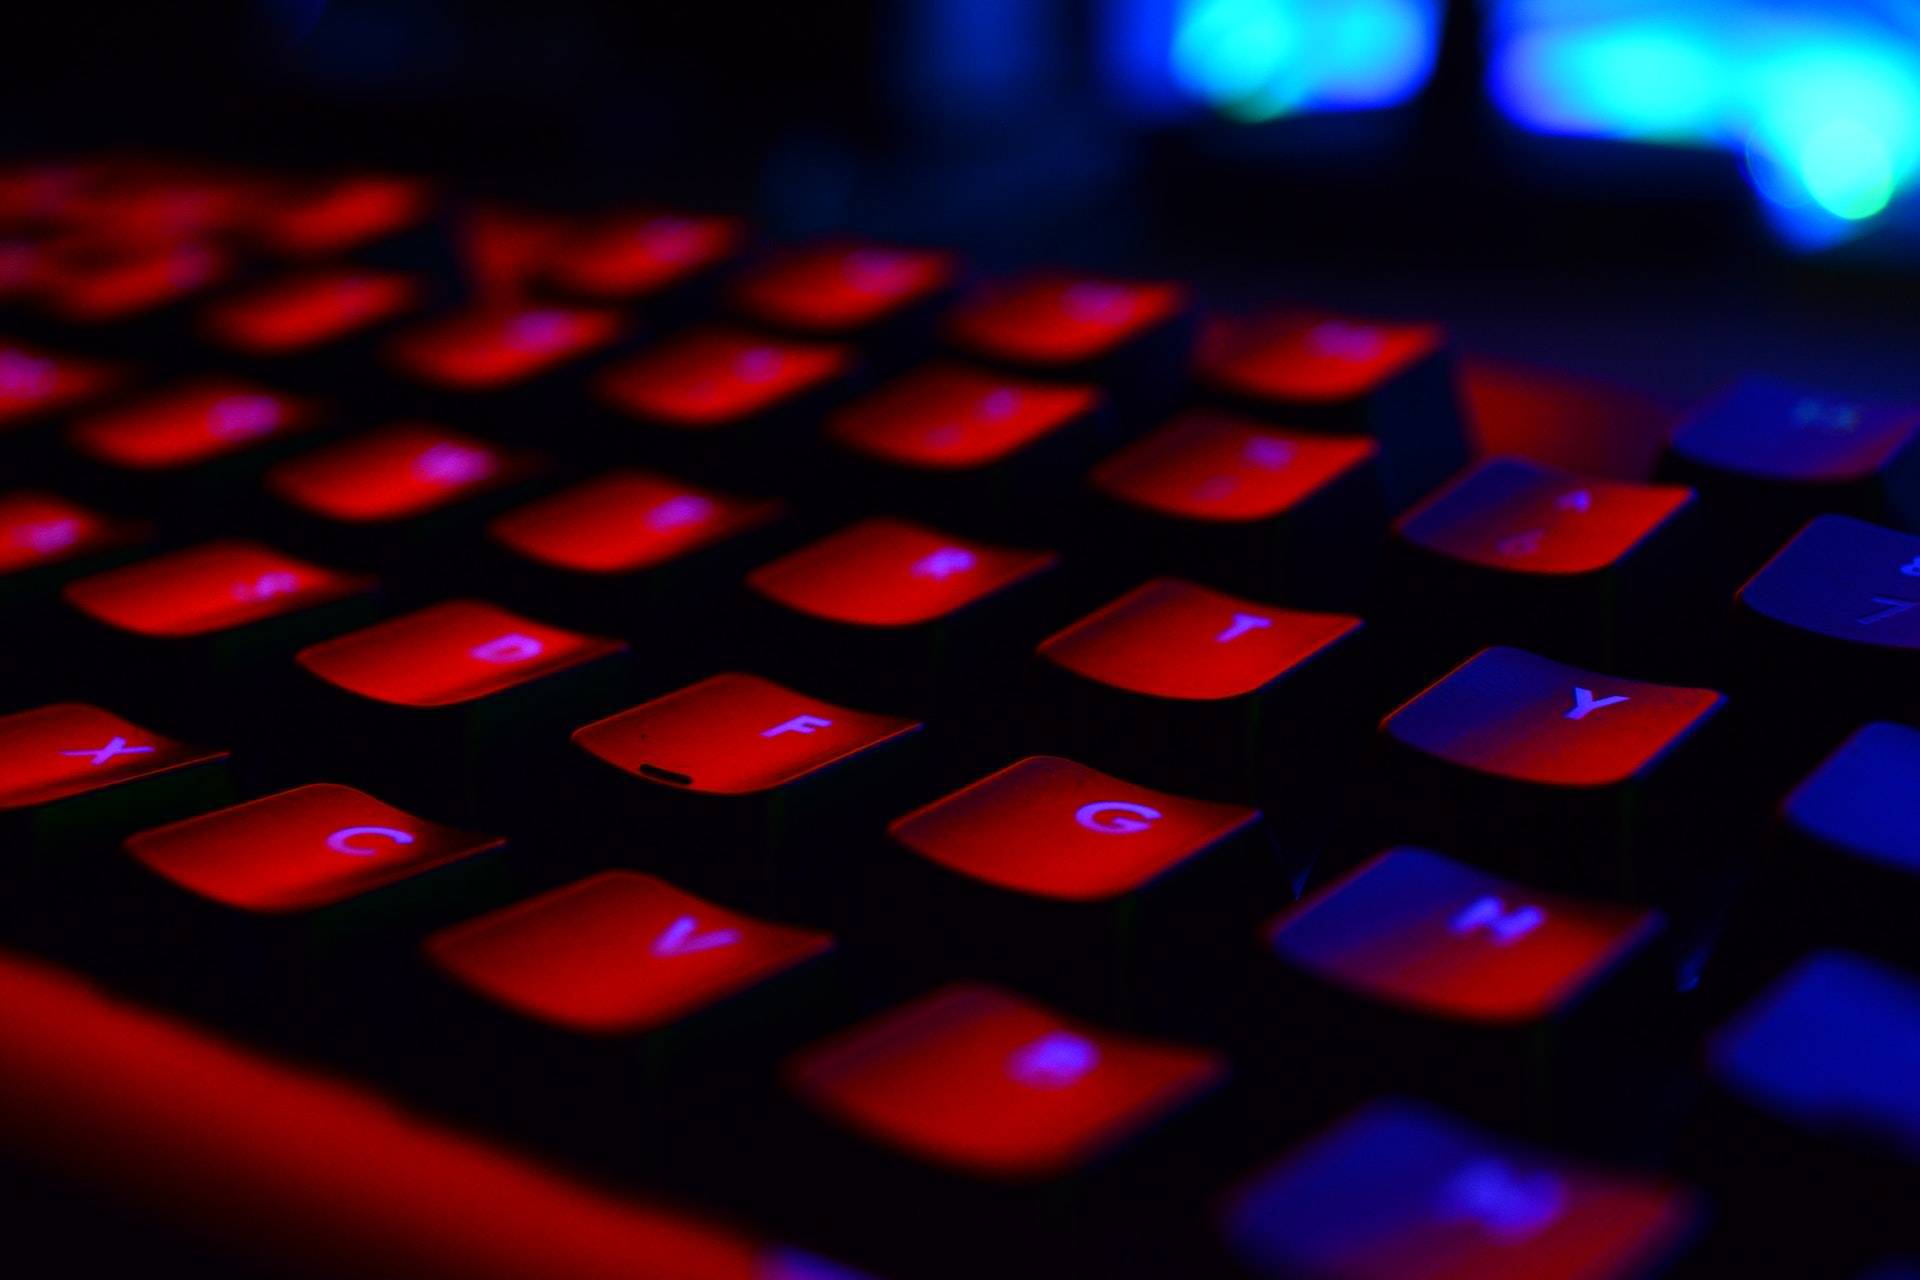 A Chinese security firm says DarkHotel hackers are behind an espionage campaign - CyberScoop